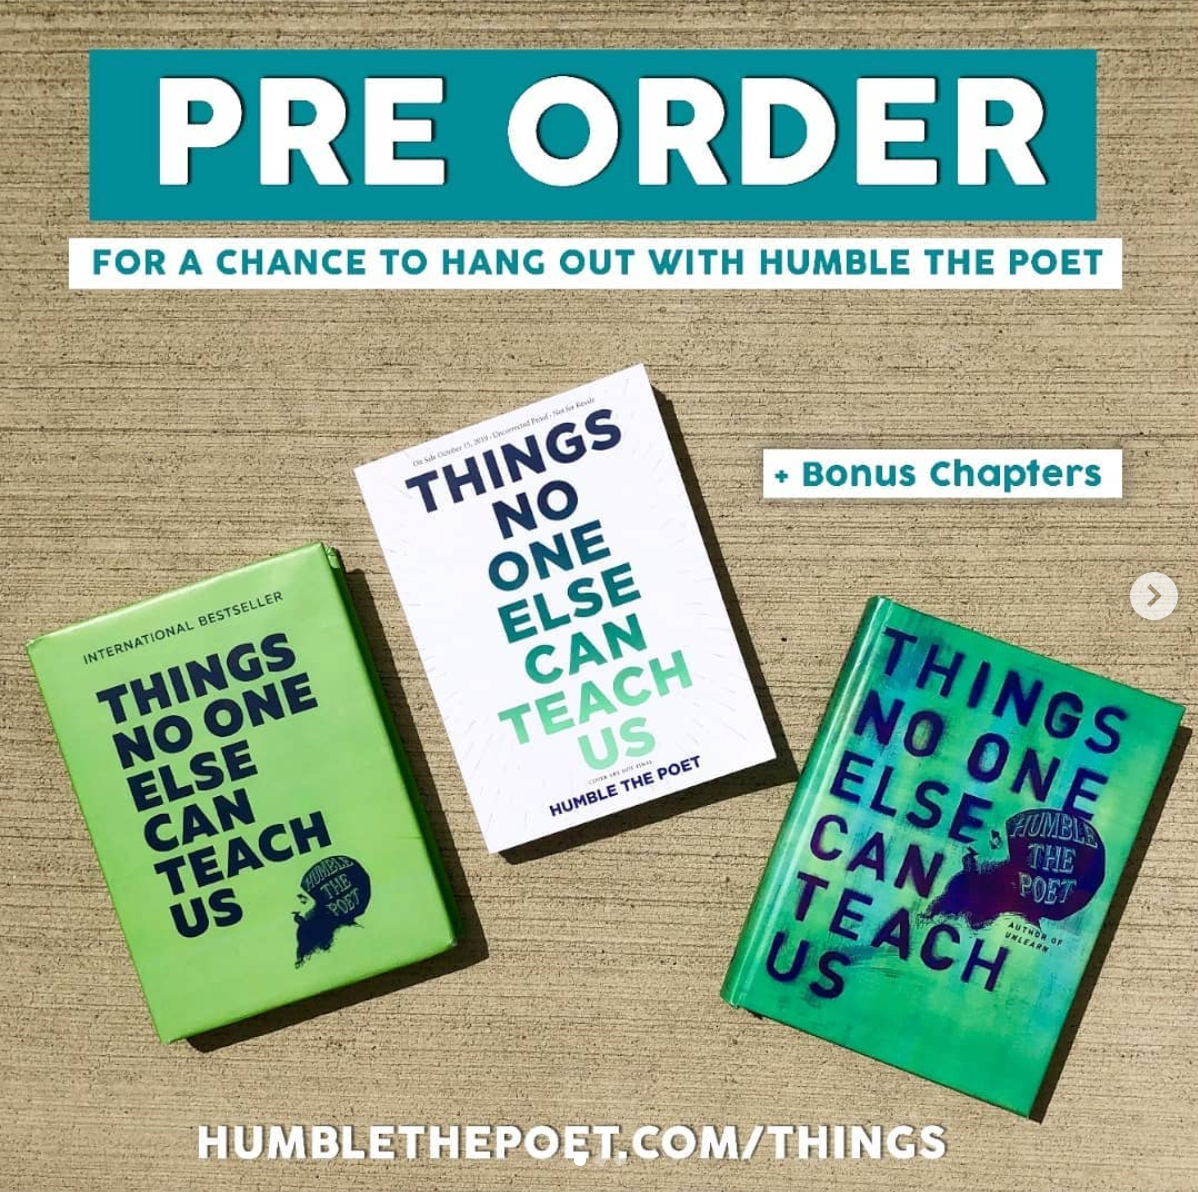 THINGS NO ONE ELSE CAN TEACH US Is Available for Pre-Order